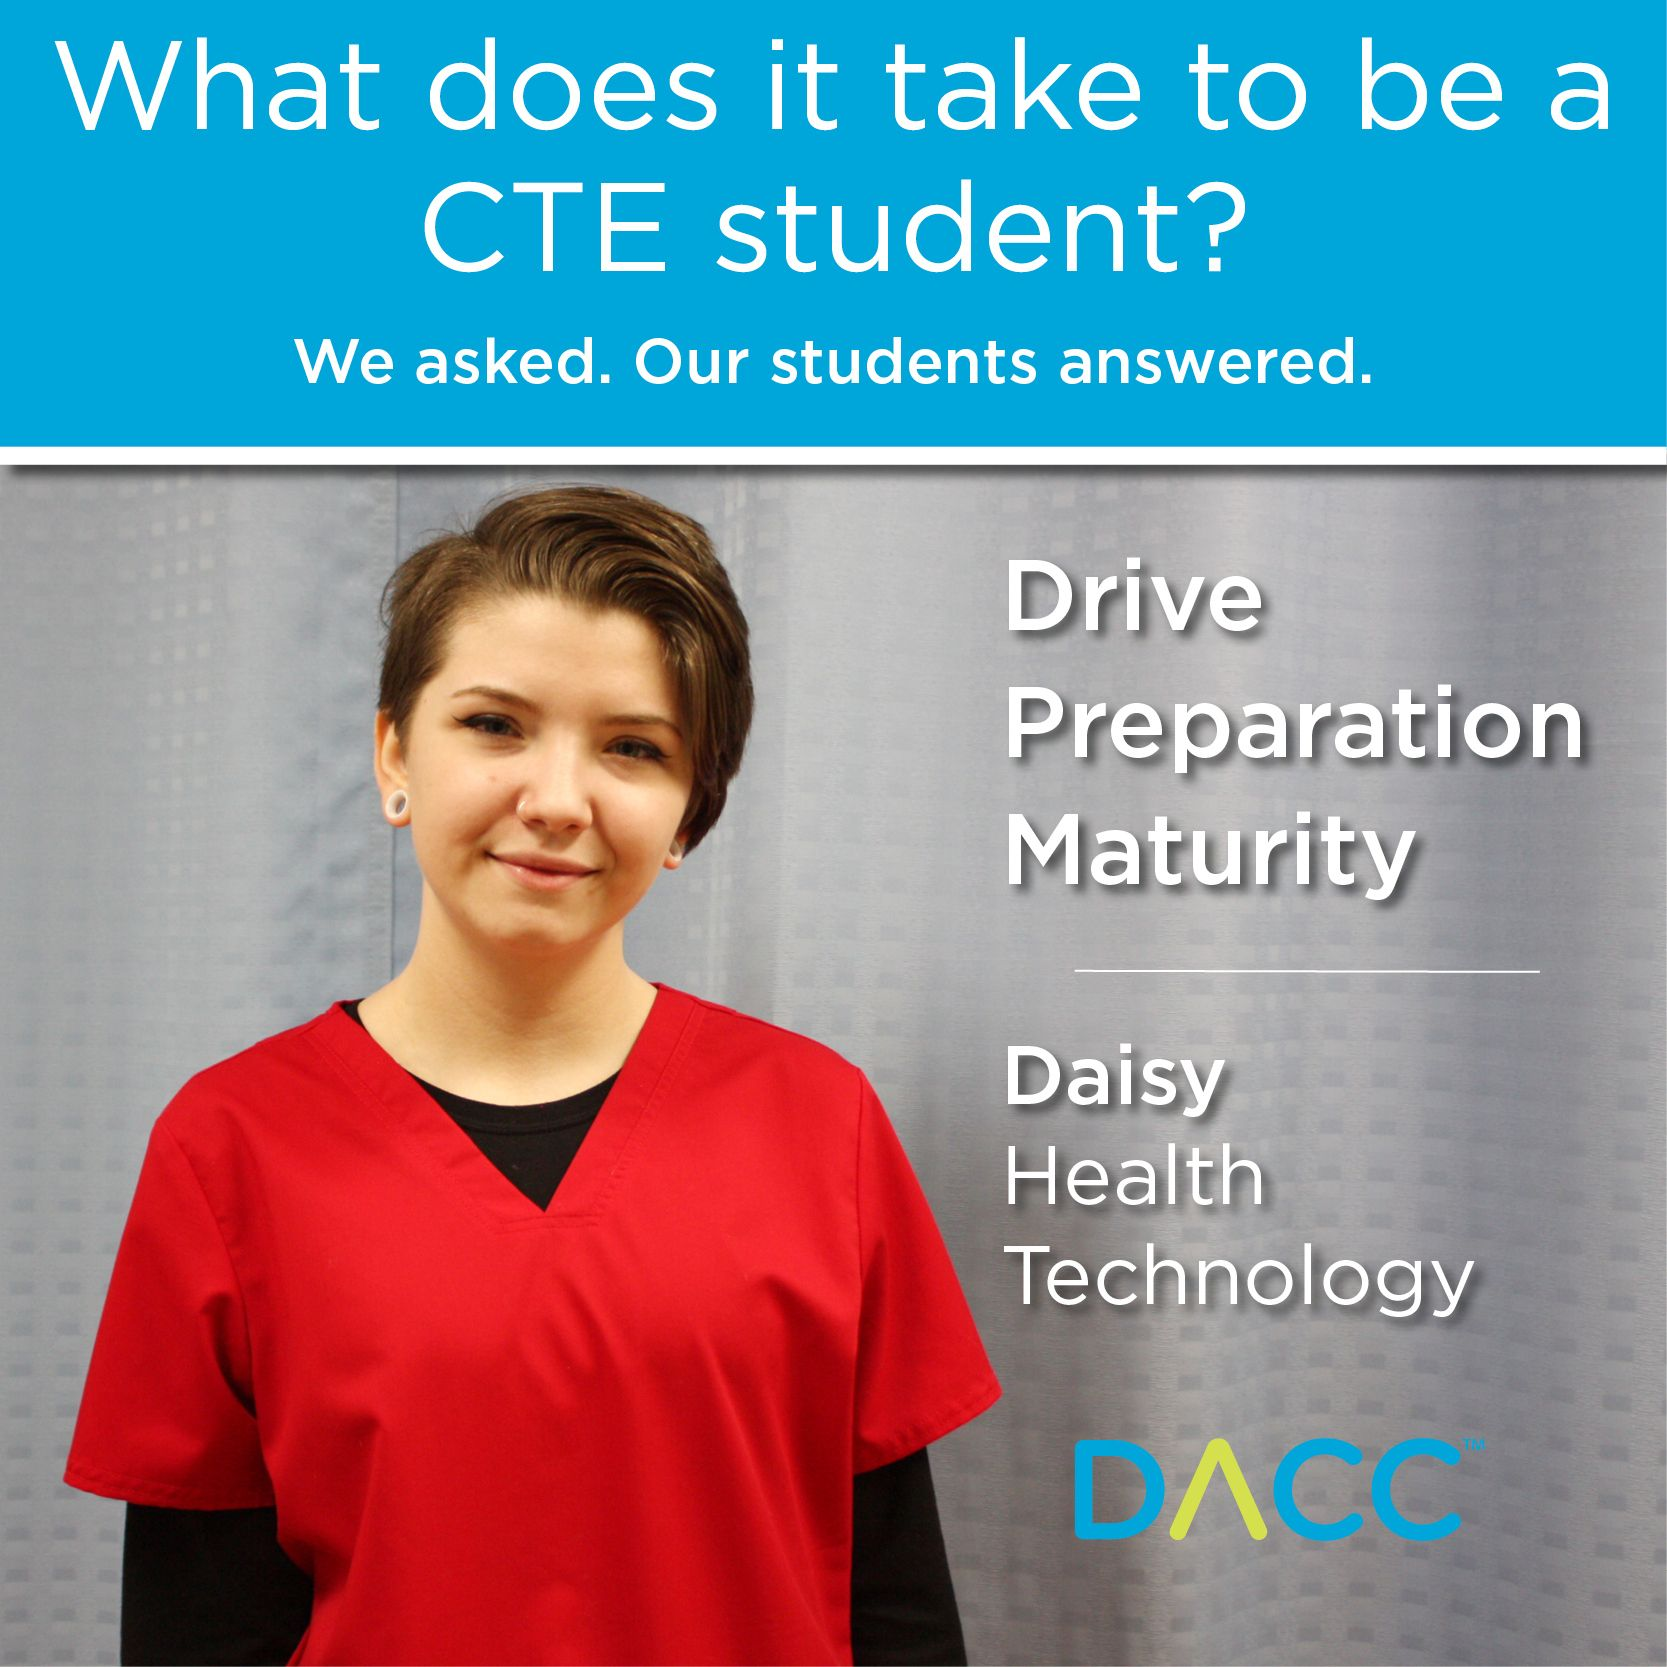 Daisy is a senior in daccs health technology program and